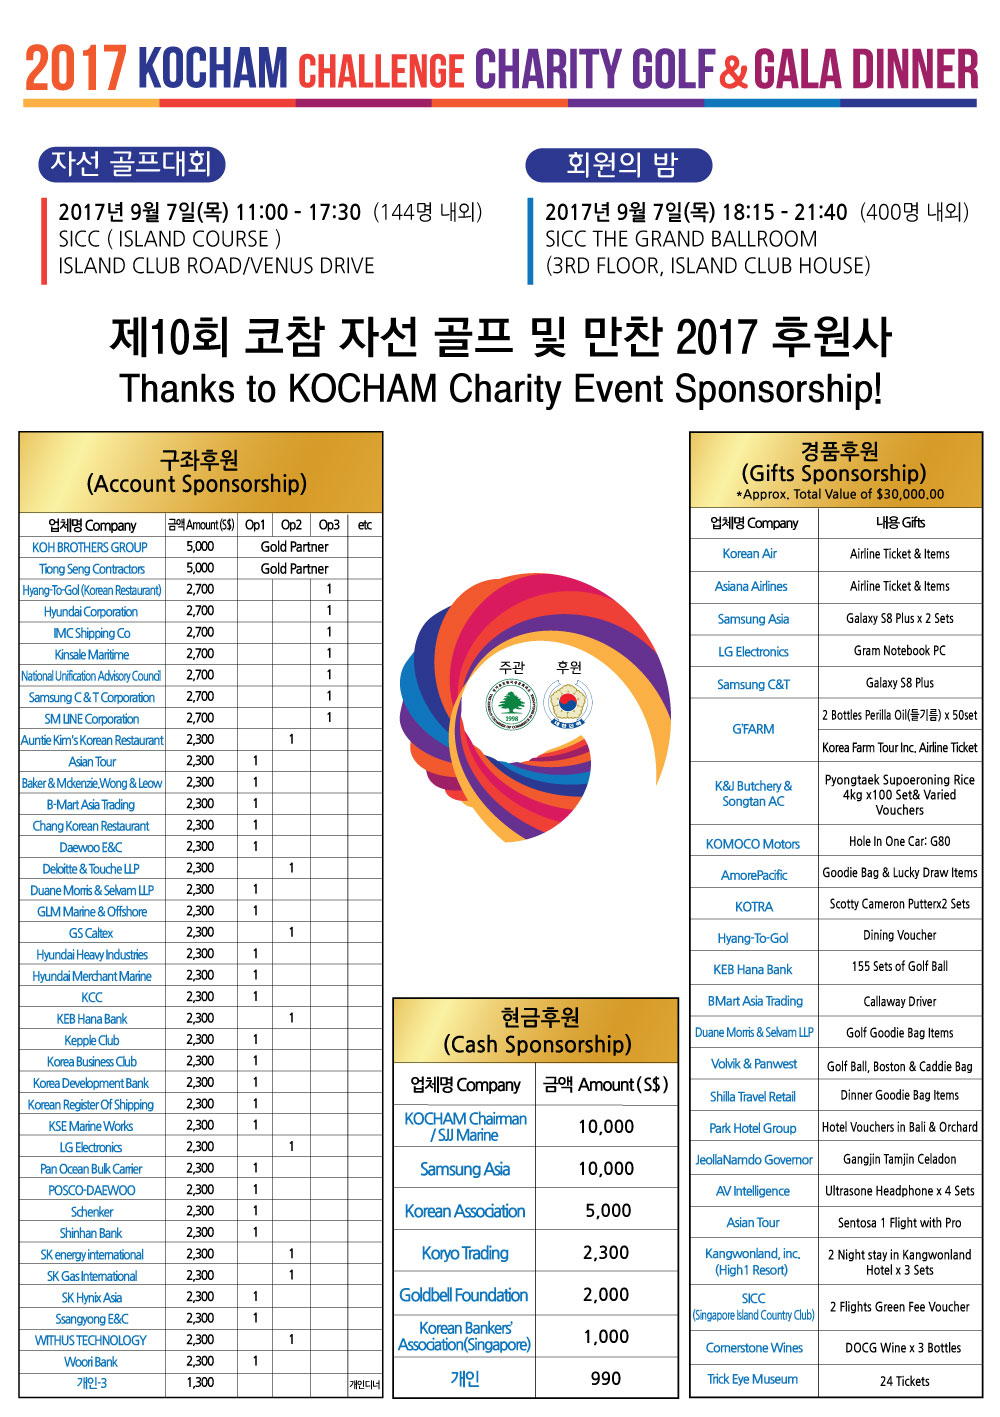 Thank you for your sponsorship for KOCHAM Charity Challenge! 2017년 자선행사 후원에 감사드립니다!